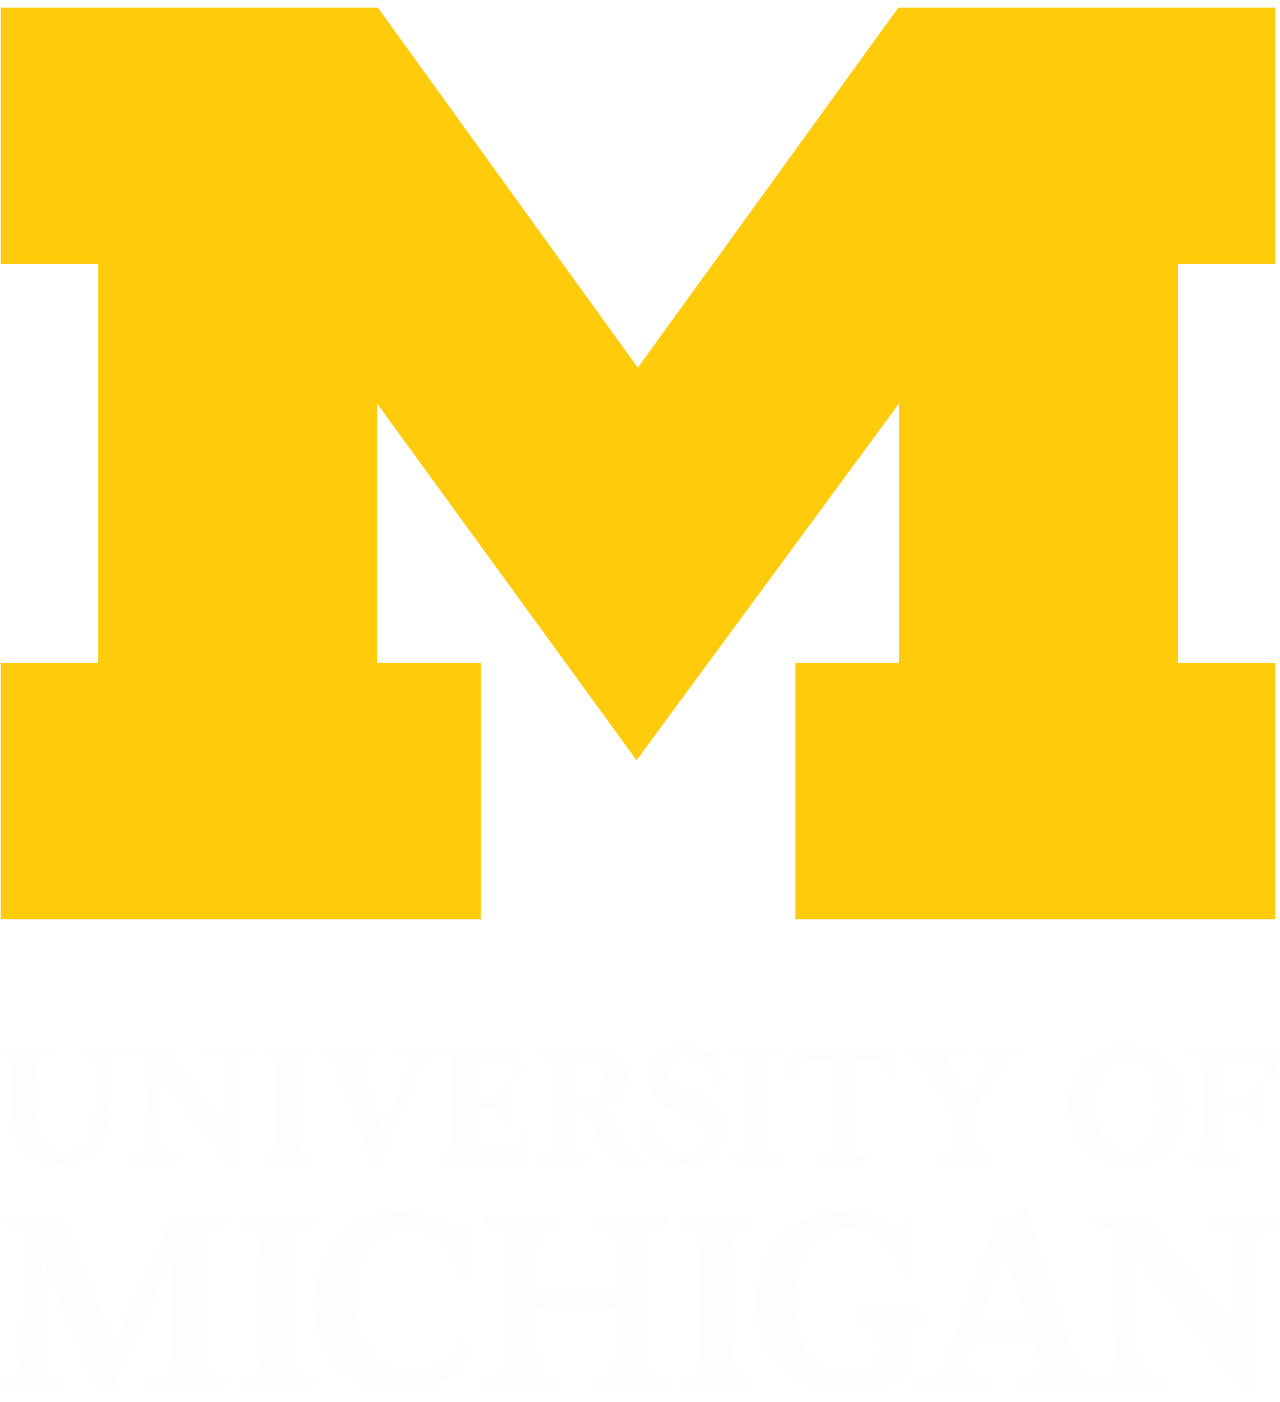 University of michigan football clipart clip royalty free Show Us Your Best #Selfie – UofMichigan Joins Snapchat! | U-M Social ... clip royalty free